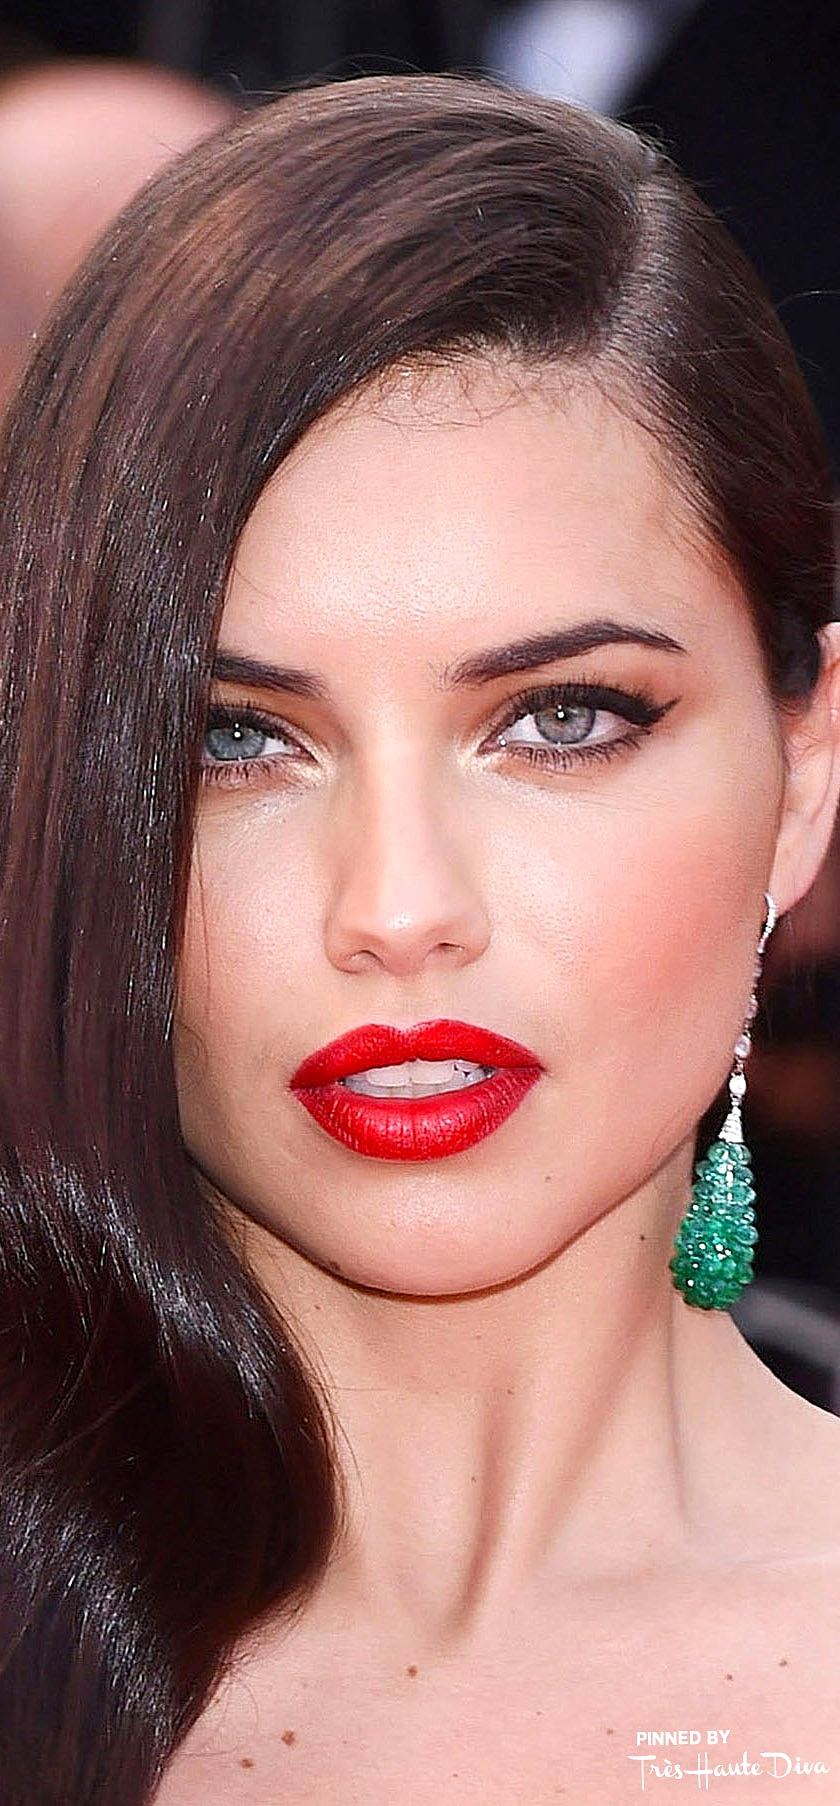 Adriana Lima                 Photo by Rex Features